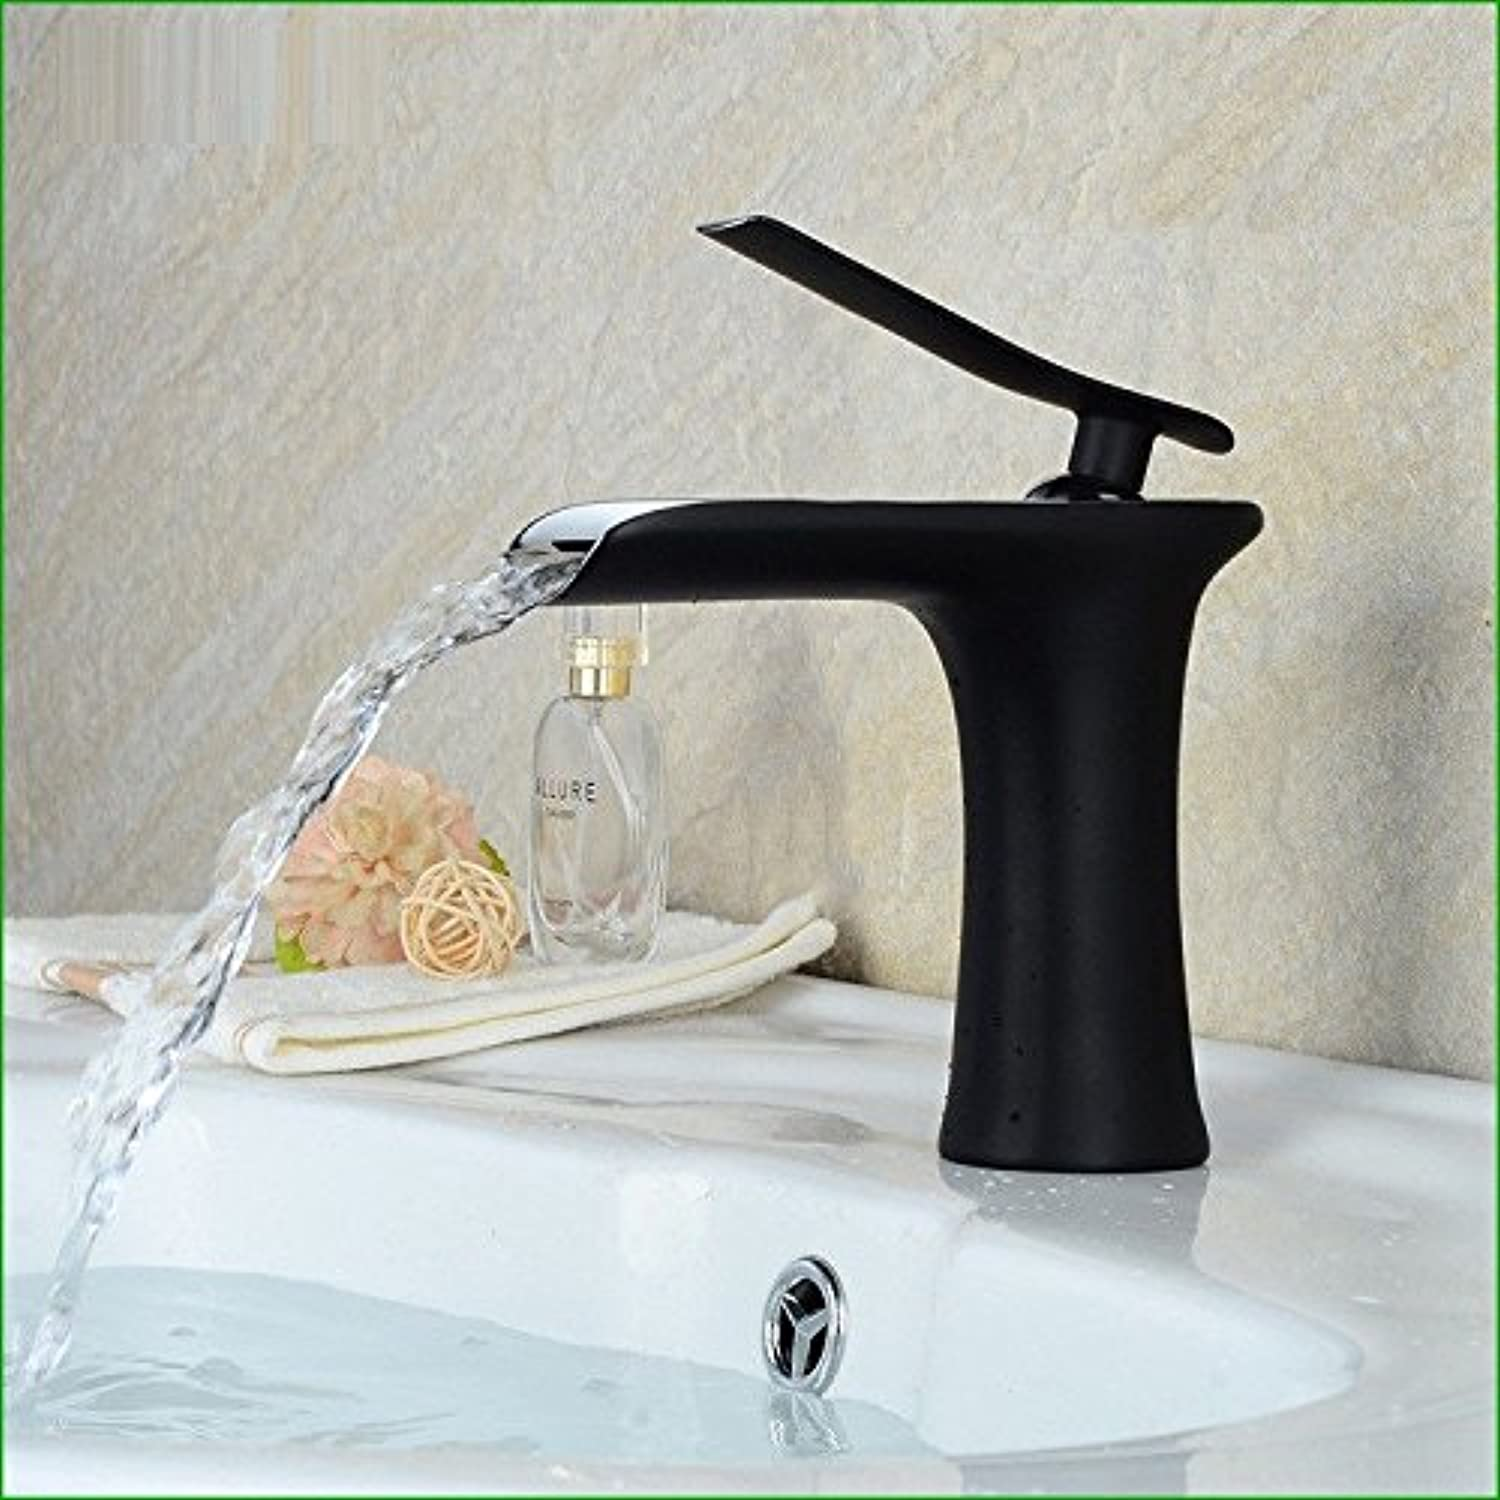 Bijjaladeva Antique Kitchen Sink Mixer Tap The Copper Paint Plating Bath Falls Out of The Water Basin Sinks Kitchen Faucet